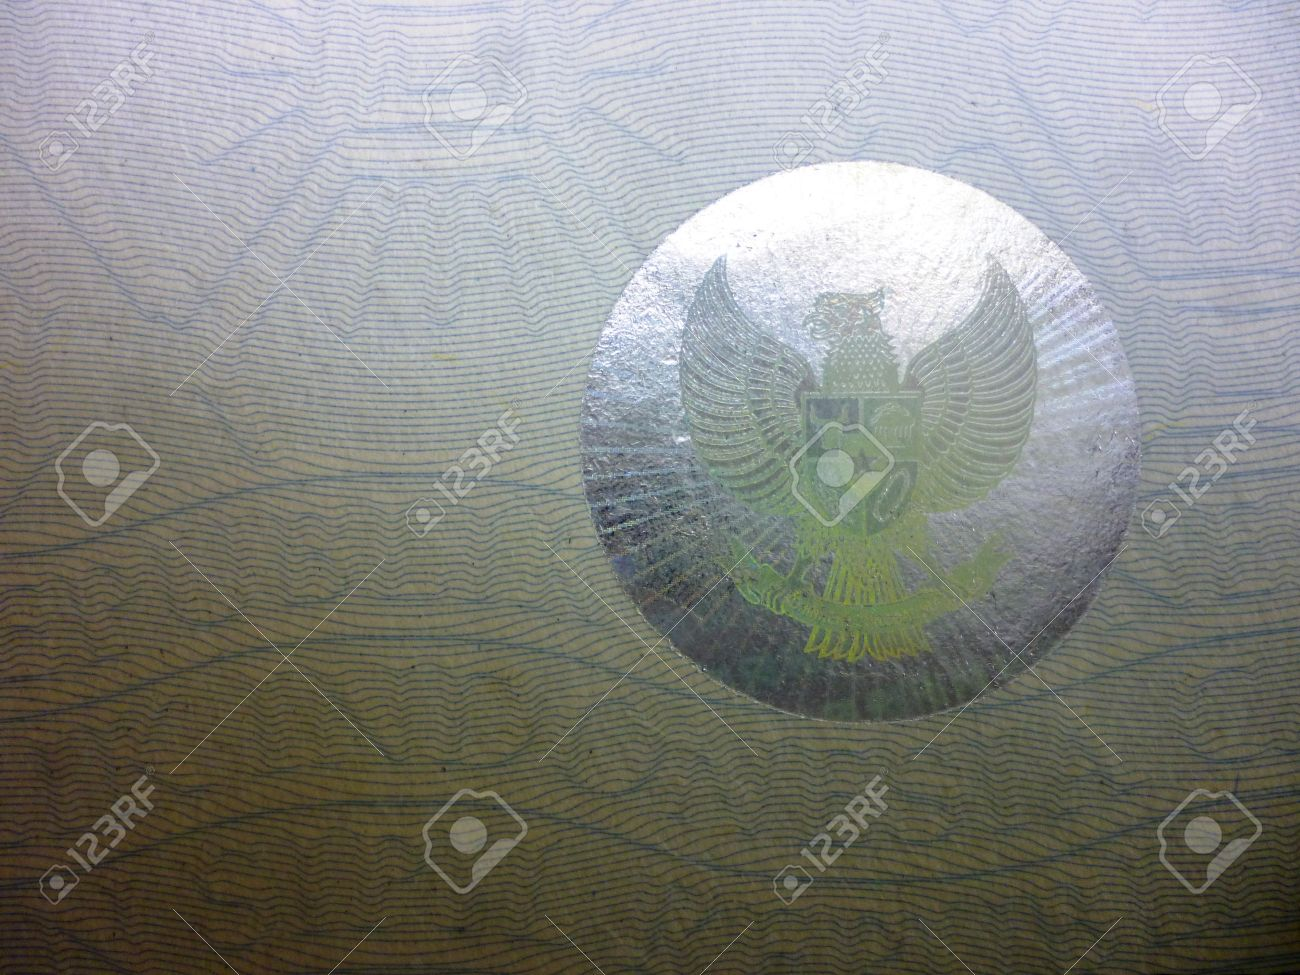 Garuda Pancasila Symbol On A Paper Hologram In Indonesia Country